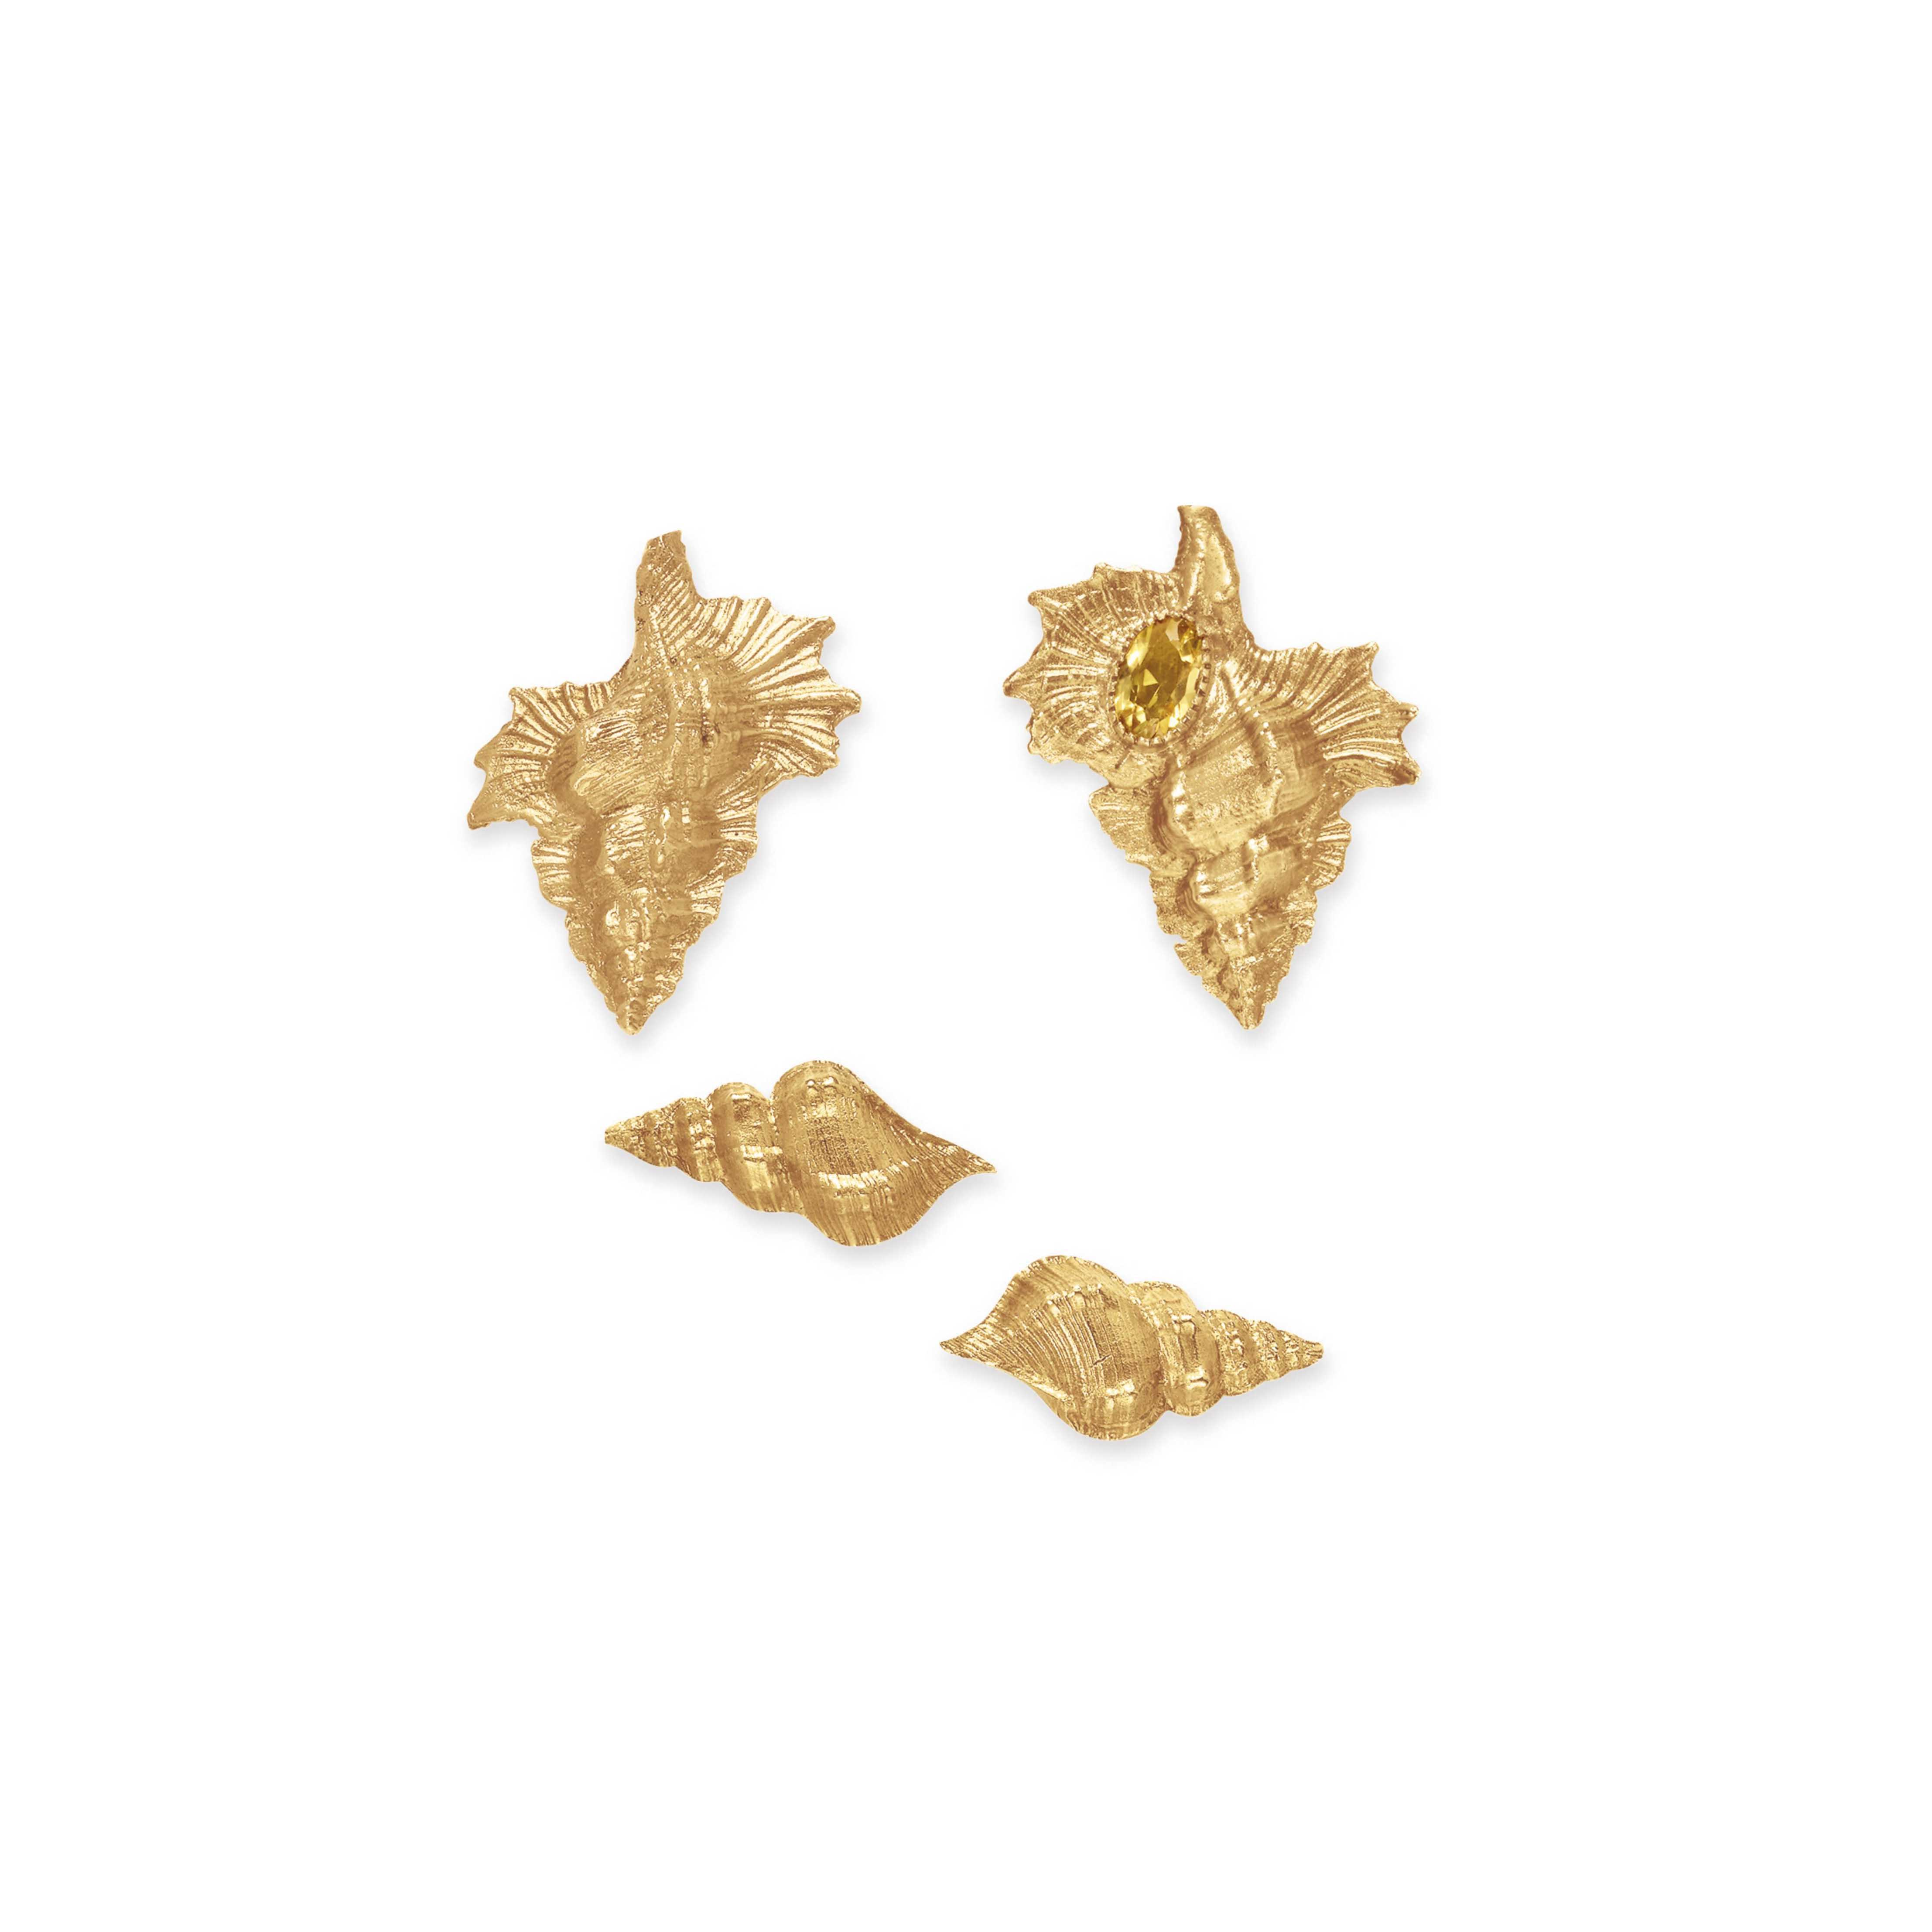 A SET OF GOLD SHELL JEWELRY, BY EDMOND FORET